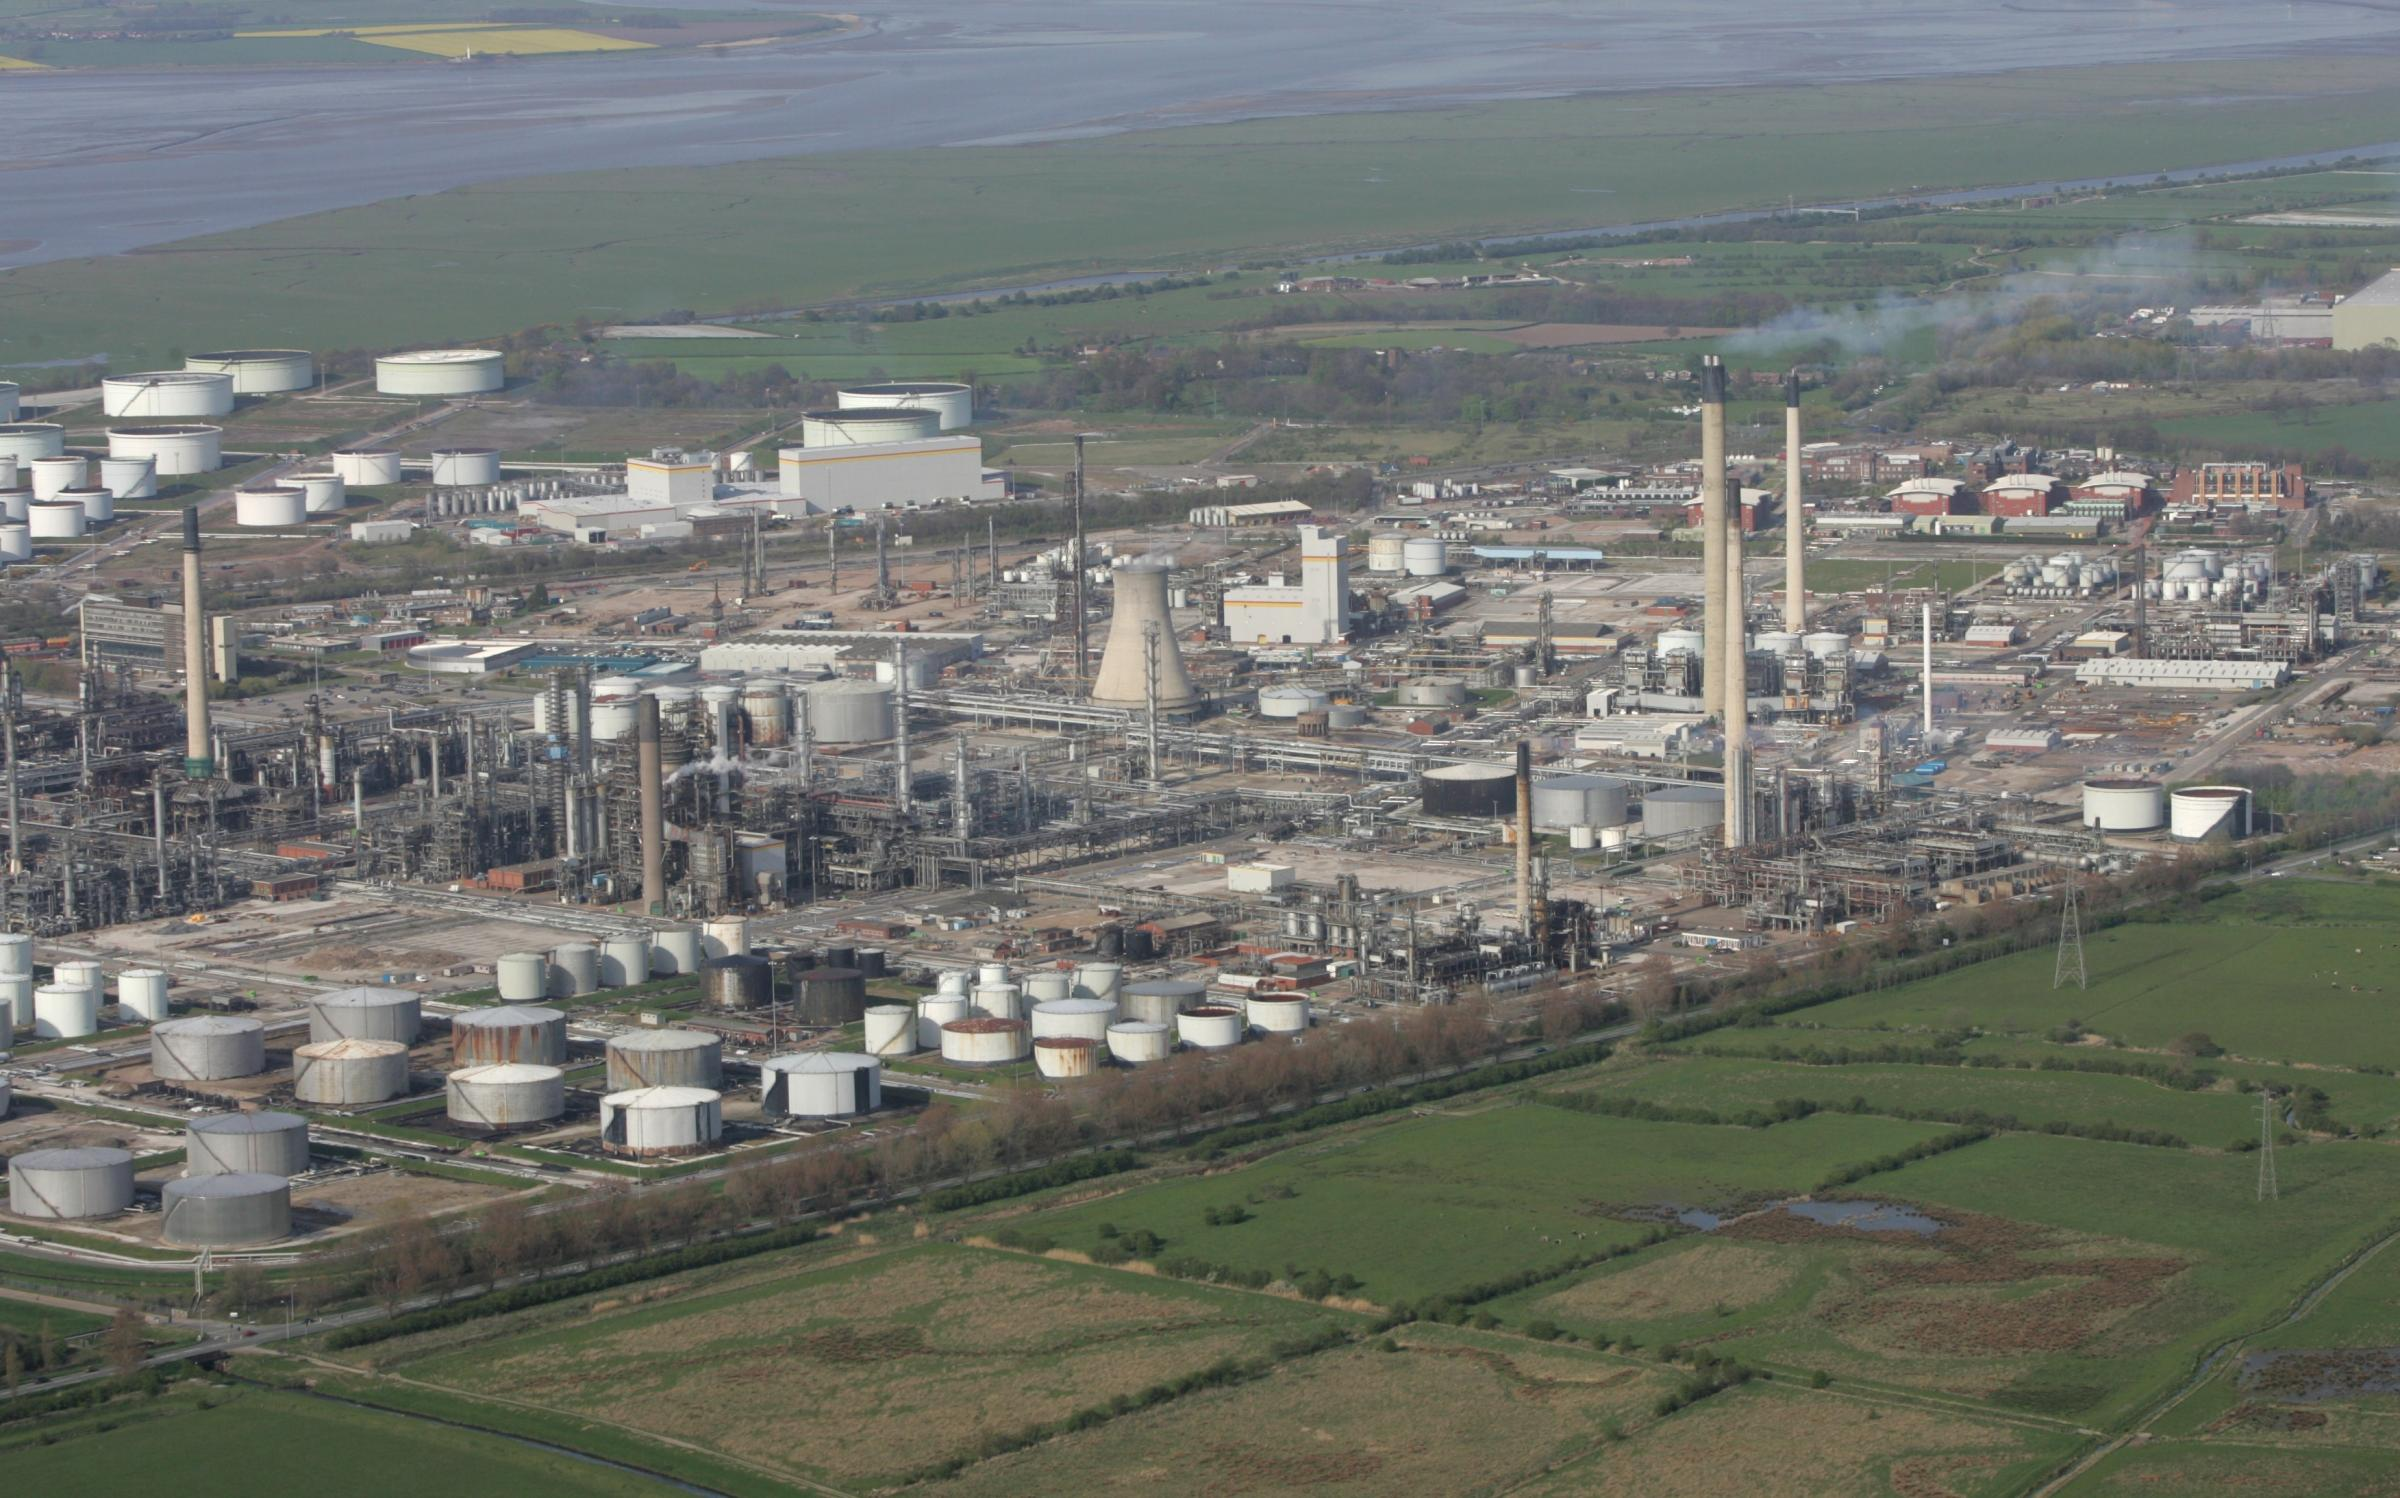 The Essar oil refinery at Stanlow, Ellesmere Port.